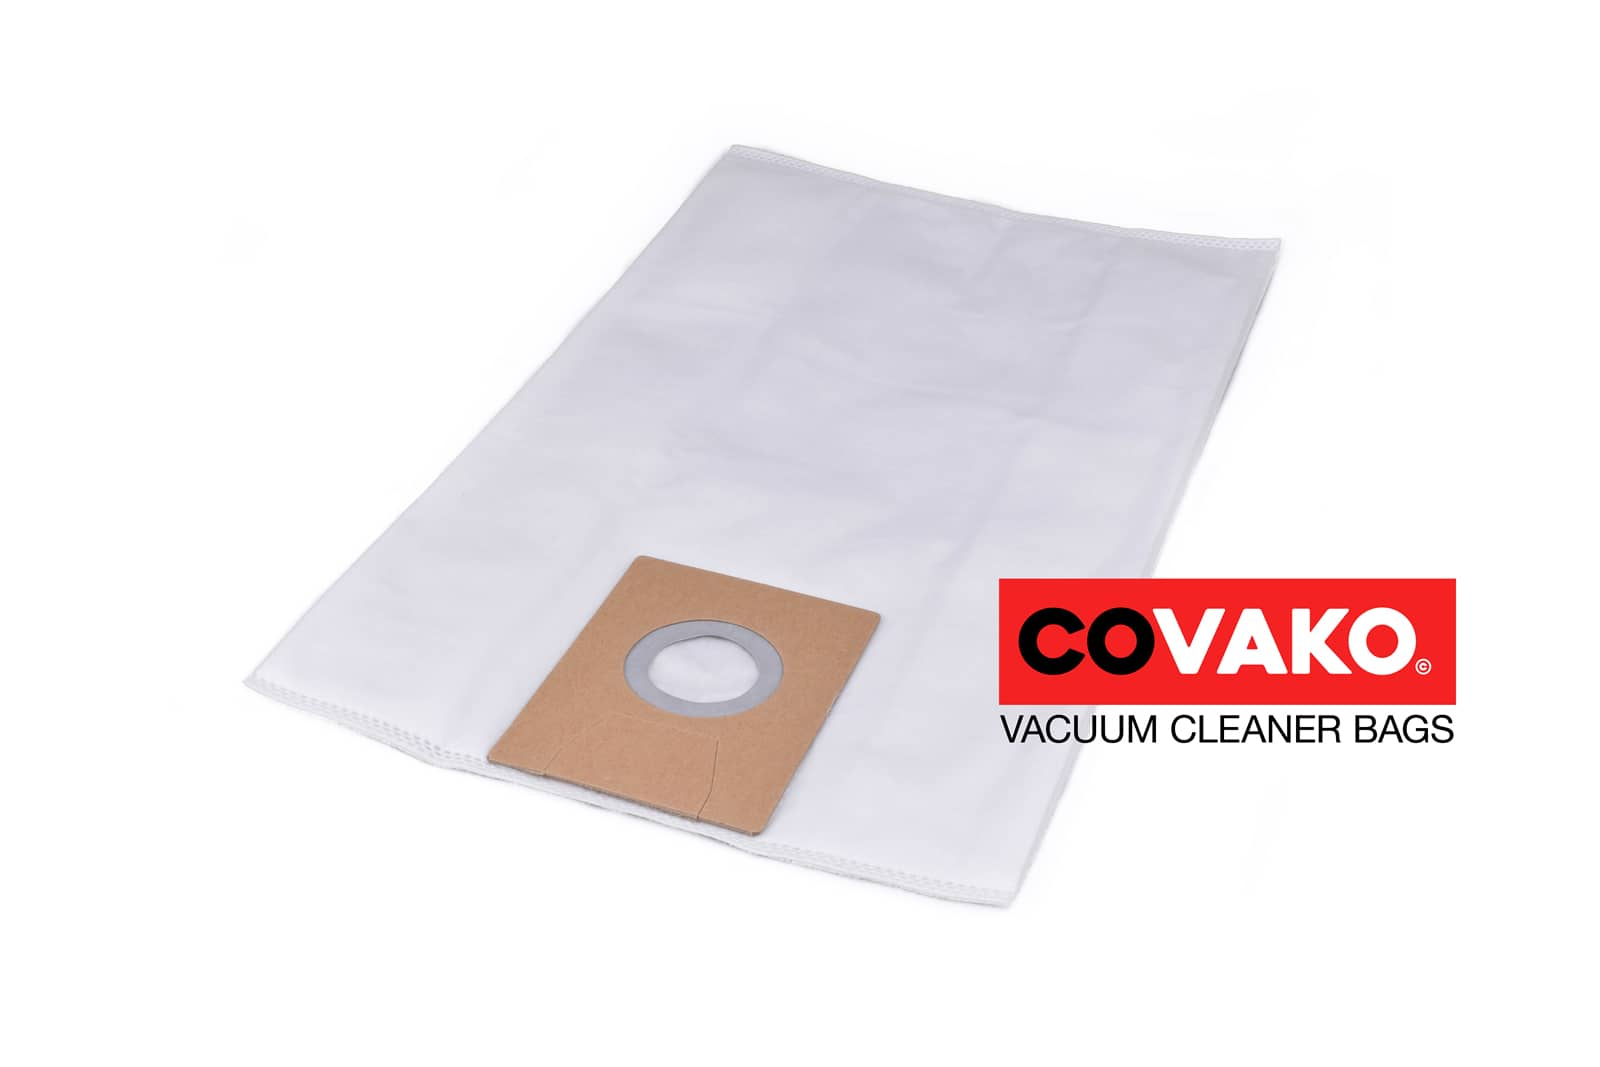 Fakir S 12 / Synthesis - Fakir vacuum cleaner bags